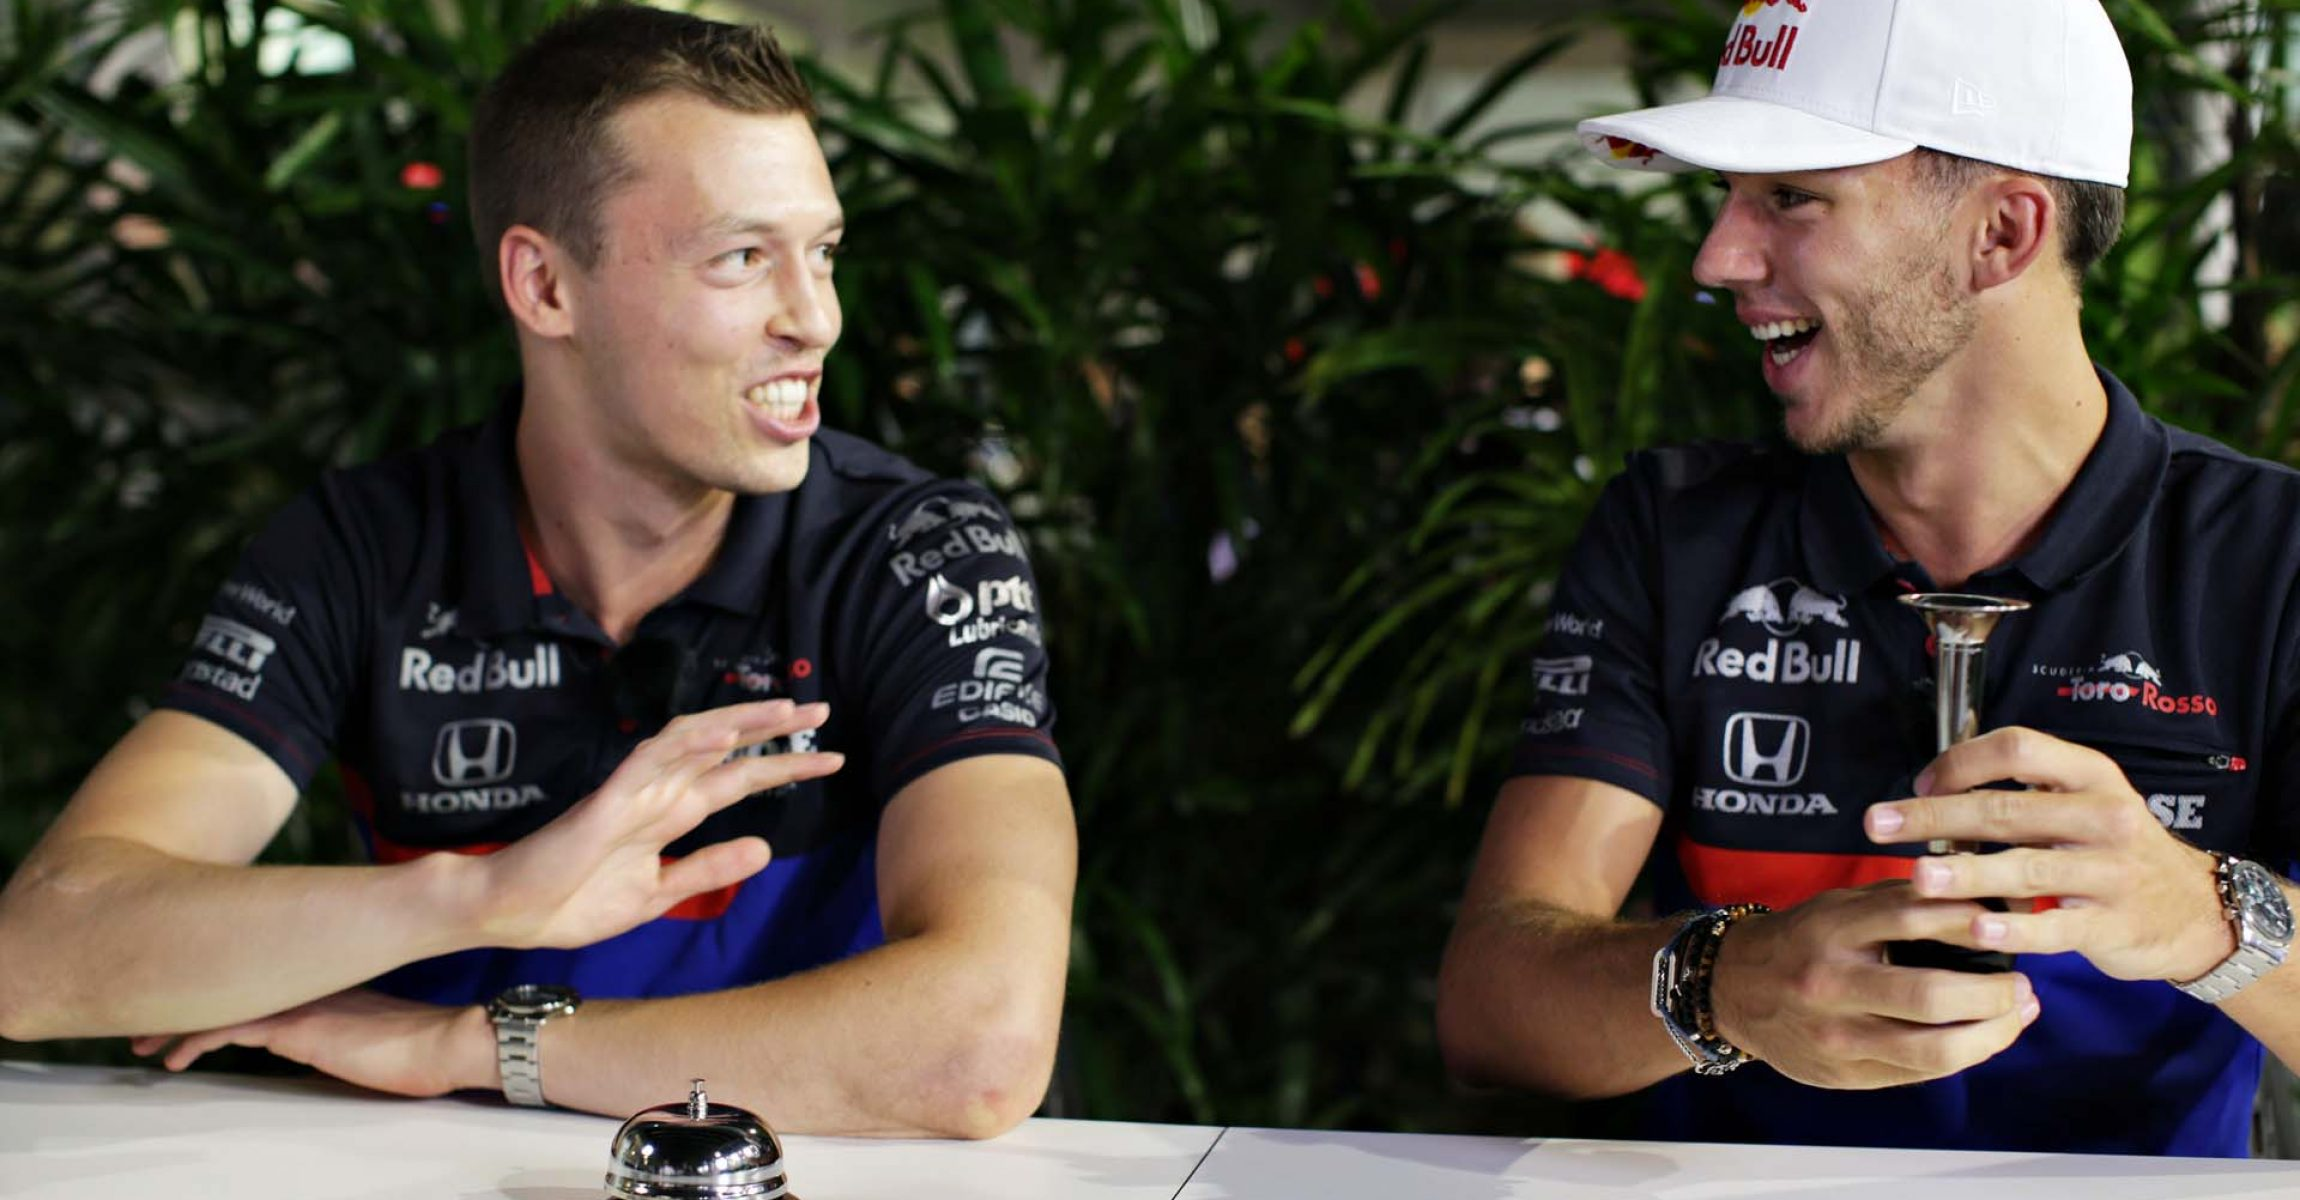 SINGAPORE, SINGAPORE - SEPTEMBER 19: Daniil Kvyat of Russia and Scuderia Toro Rosso and Pierre Gasly of France and Scuderia Toro Rosso laugh in the Paddock during previews ahead of the F1 Grand Prix of Singapore at Marina Bay Street Circuit on September 19, 2019 in Singapore. (Photo by Peter Fox/Getty Images) // Getty Images / Red Bull Content Pool // AP-21MATNA1N1W11 // Usage for editorial use only //